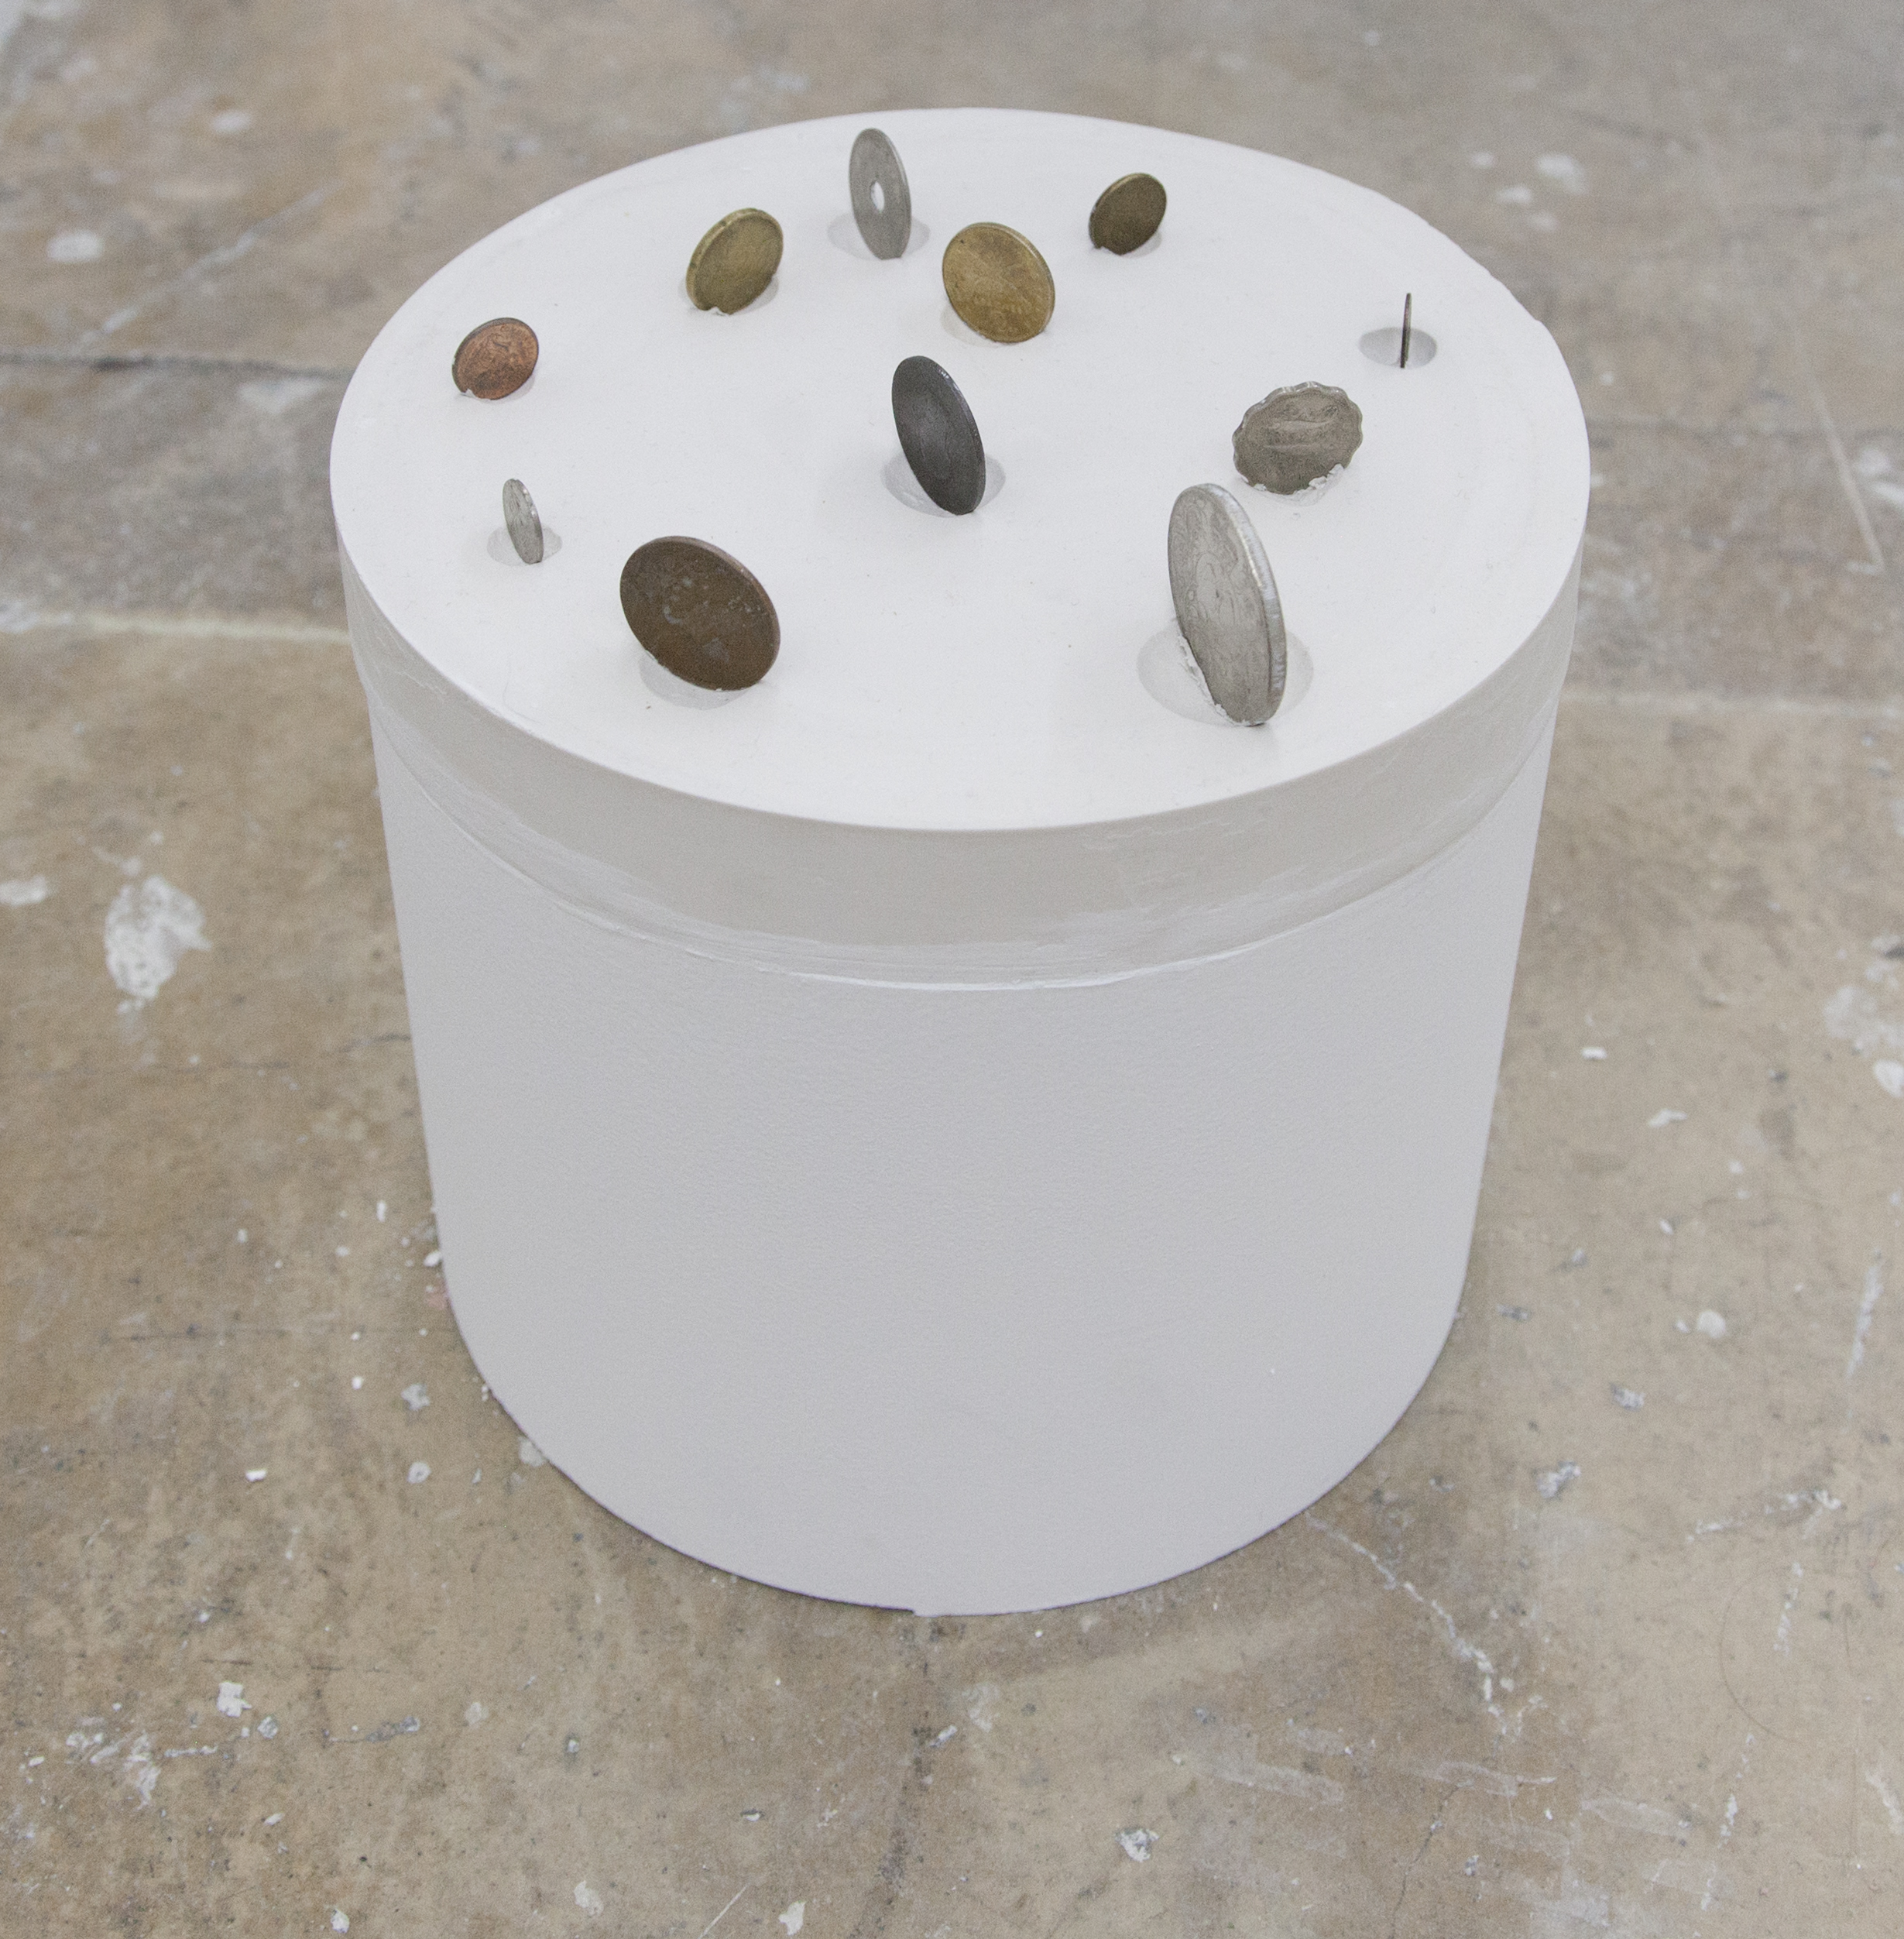 Semazen, friction with the Earth's surface , 2018. Plastic, Plaster, Paint, Coins.